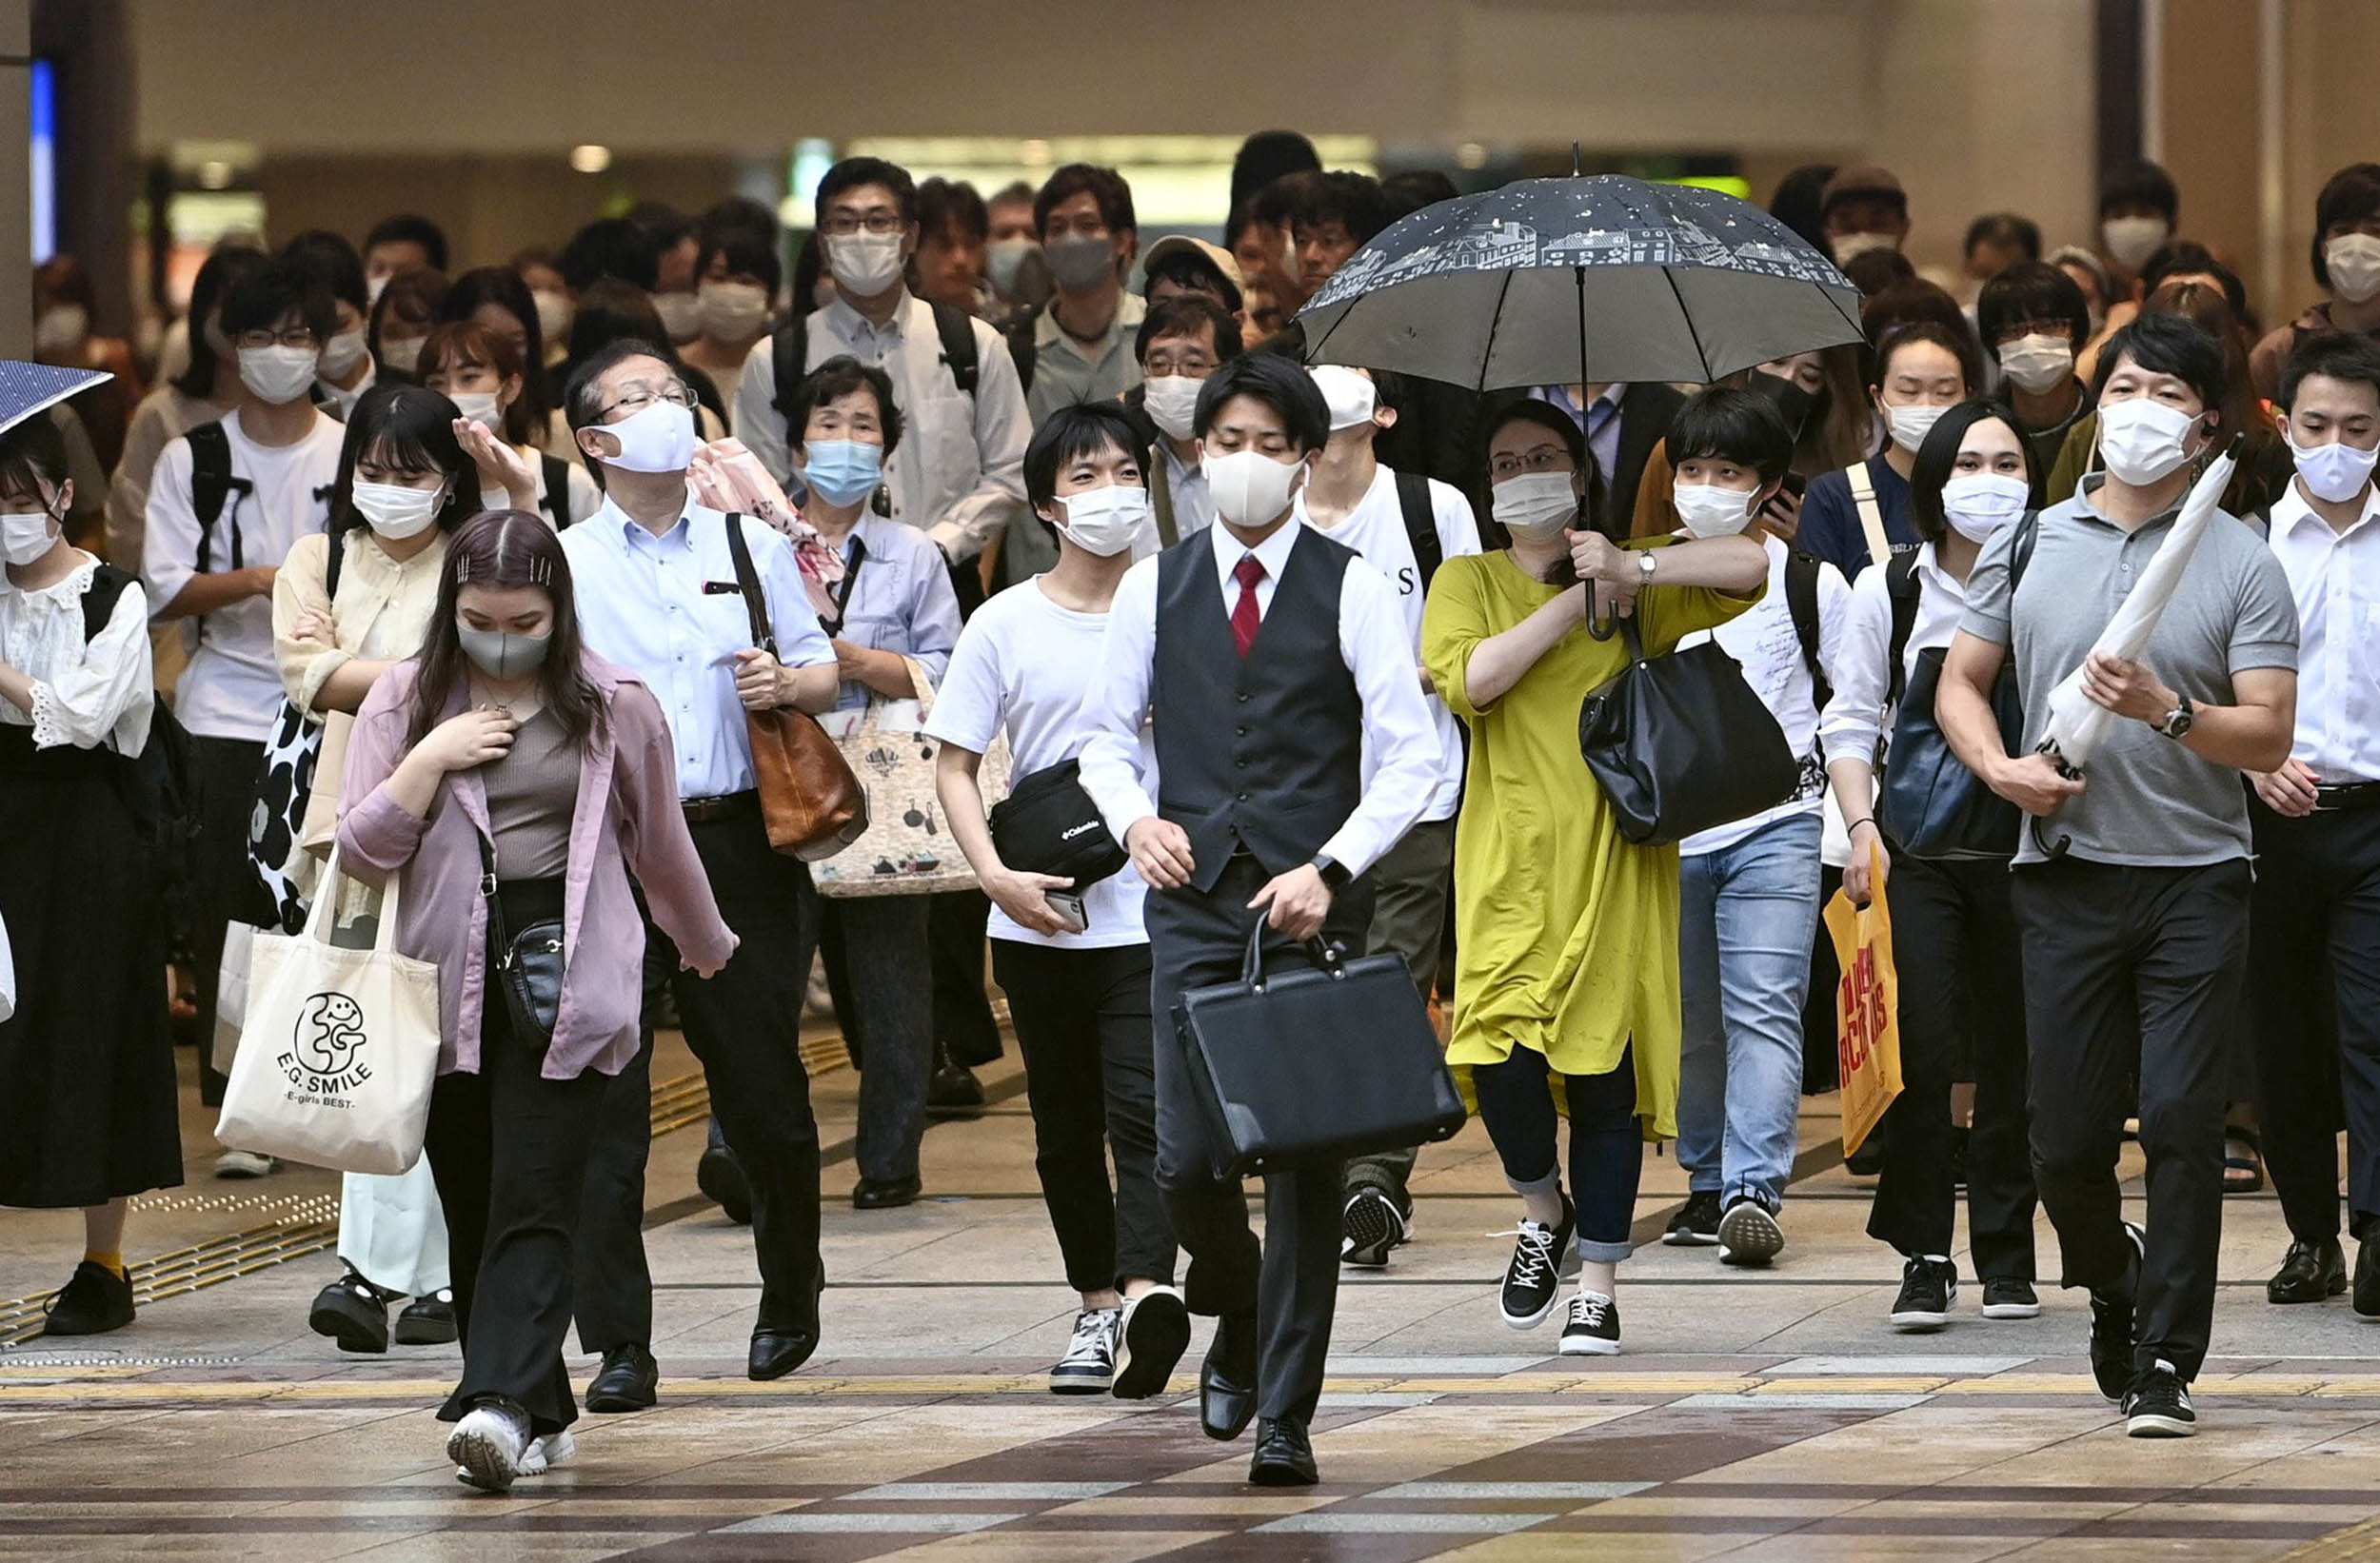 People walk in front of the JR Osaka Station in Japan on July 17. Osaka Prefecture reported 53 new cases of the novel coronavirus the same day.